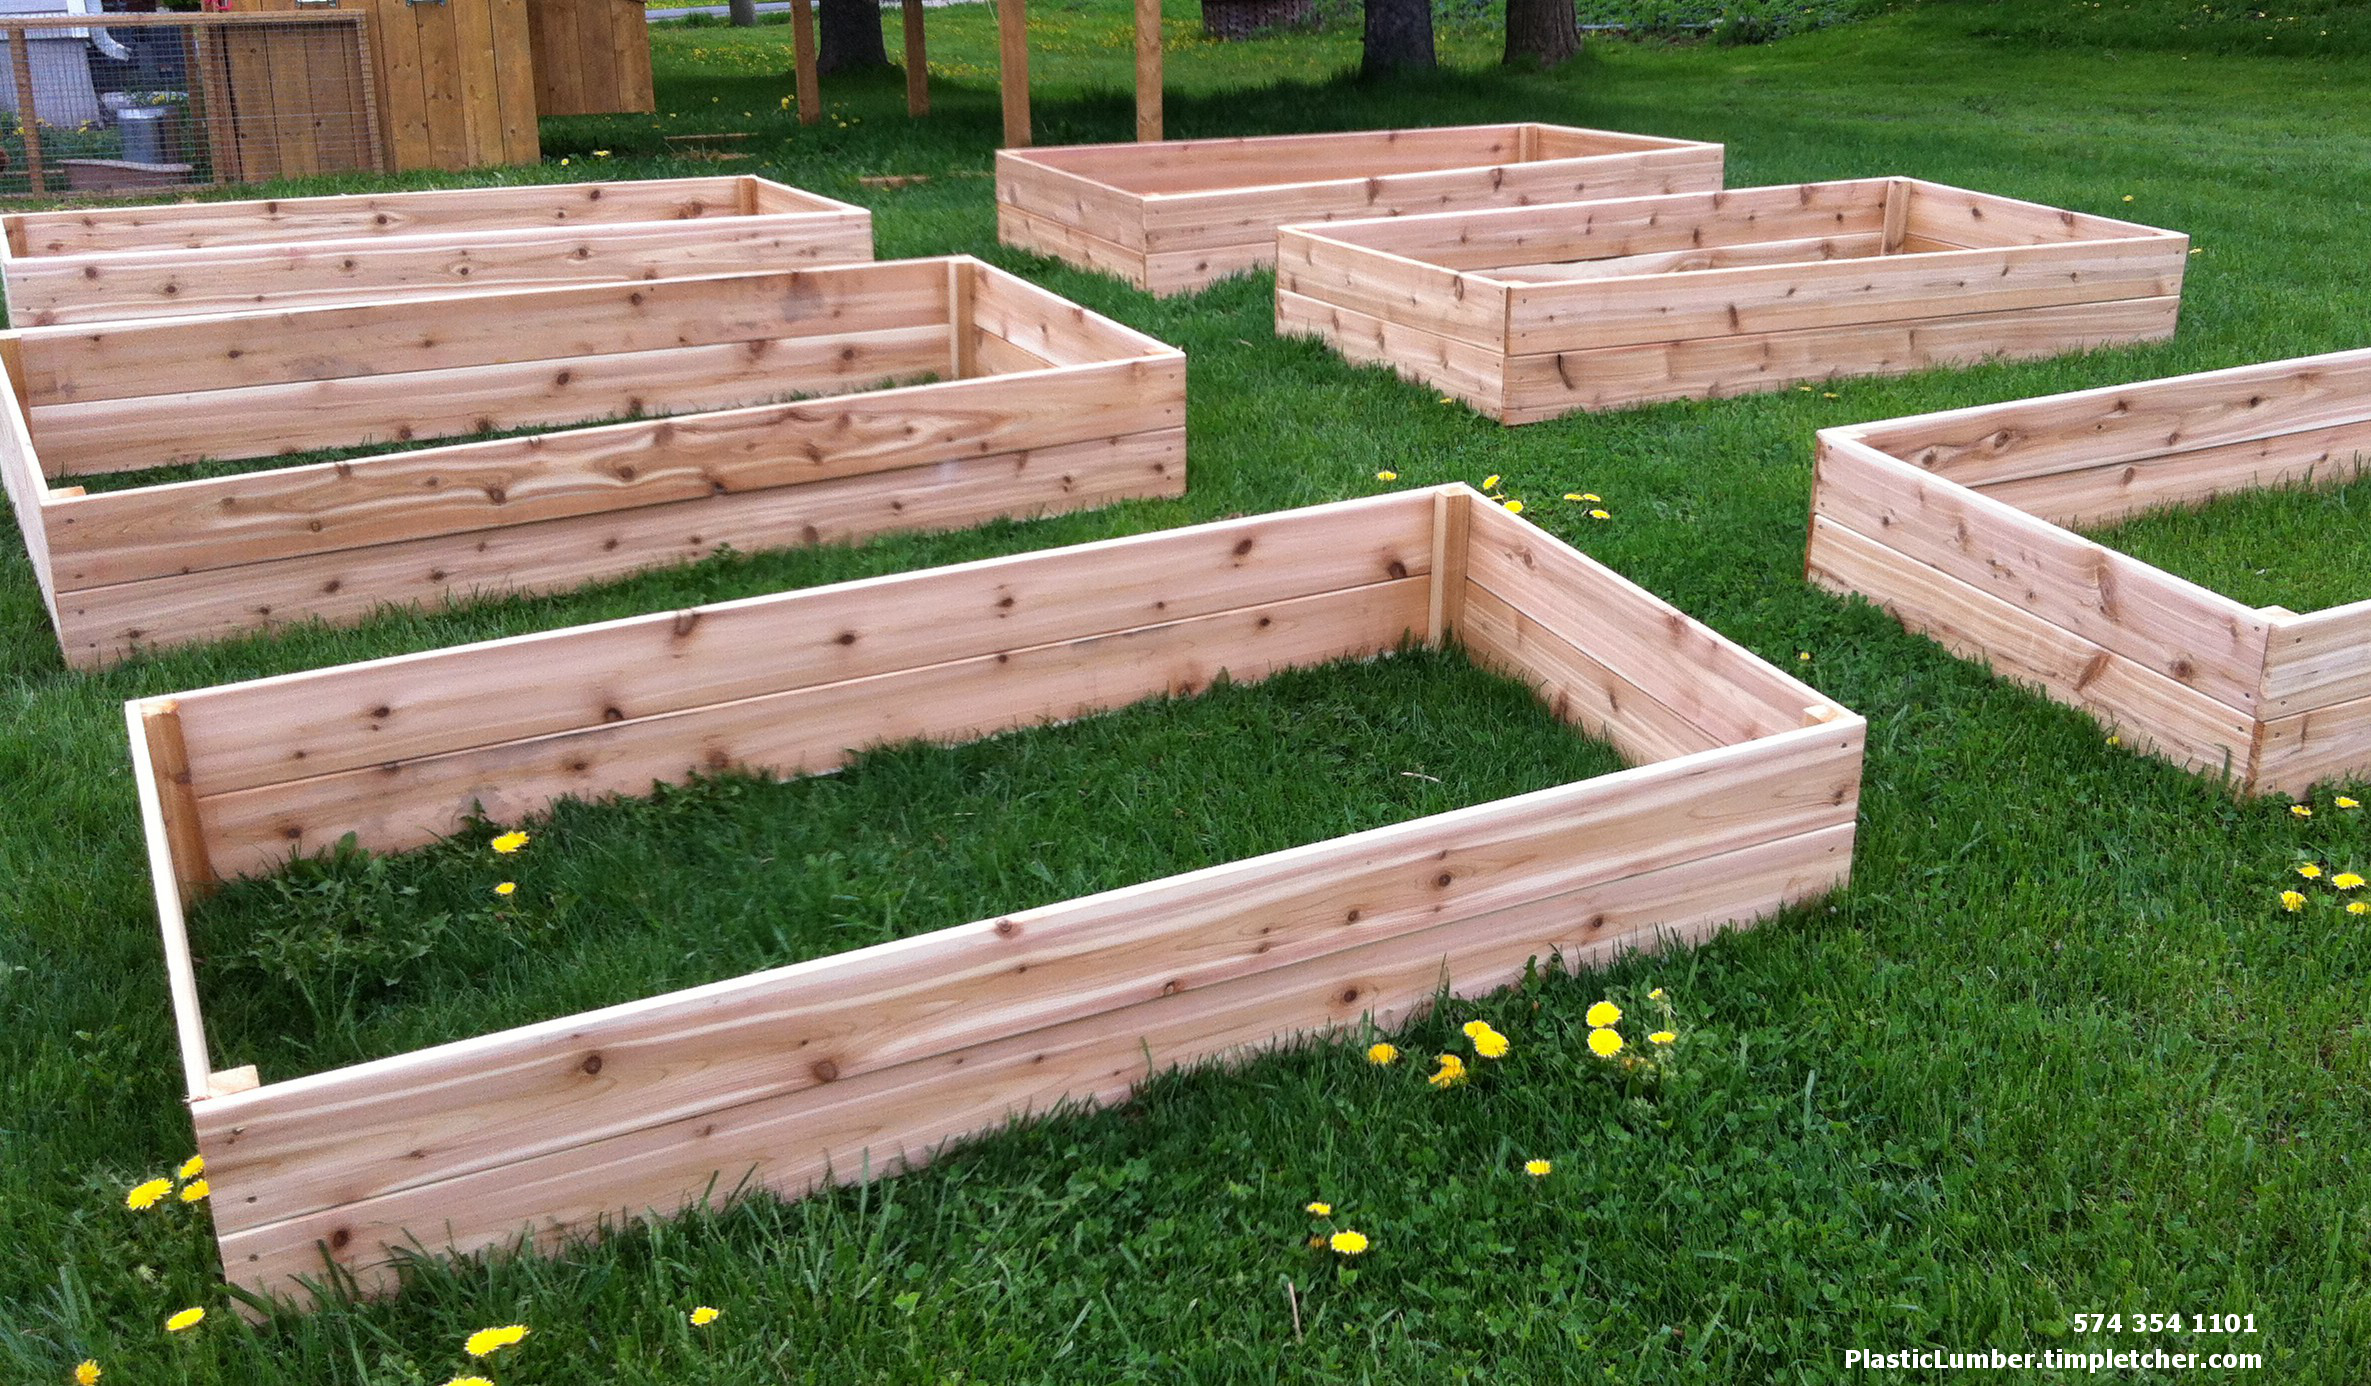 Treated Lumber For Garden Beds